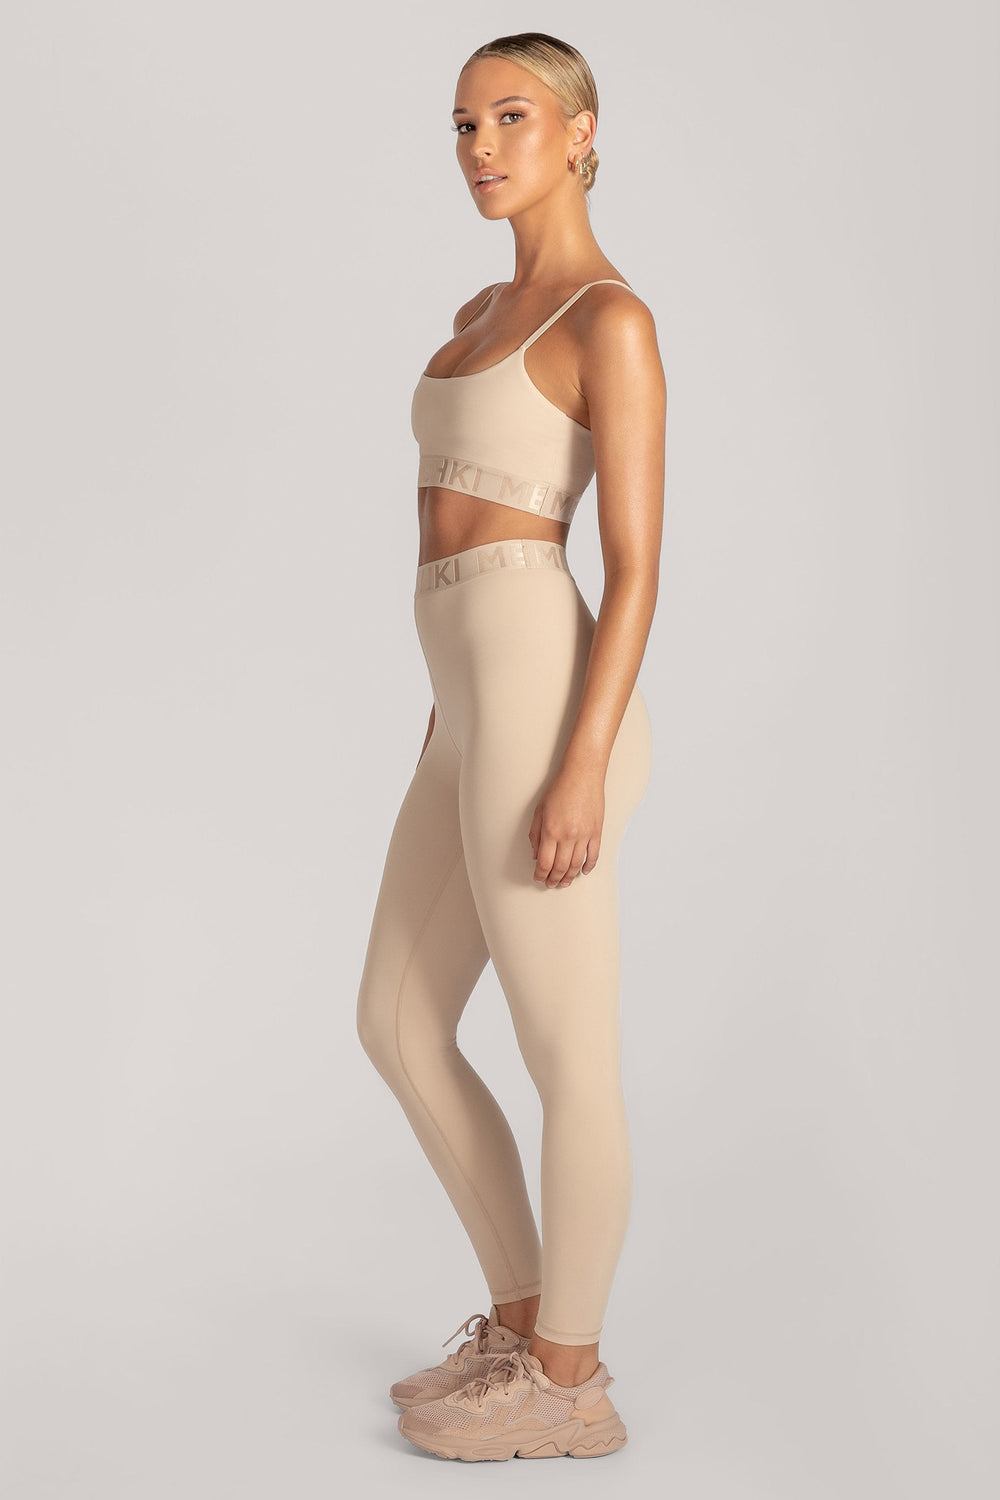 Acacia Meshki Full Length Leggings - Nude - MESHKI ?id=16076117114955